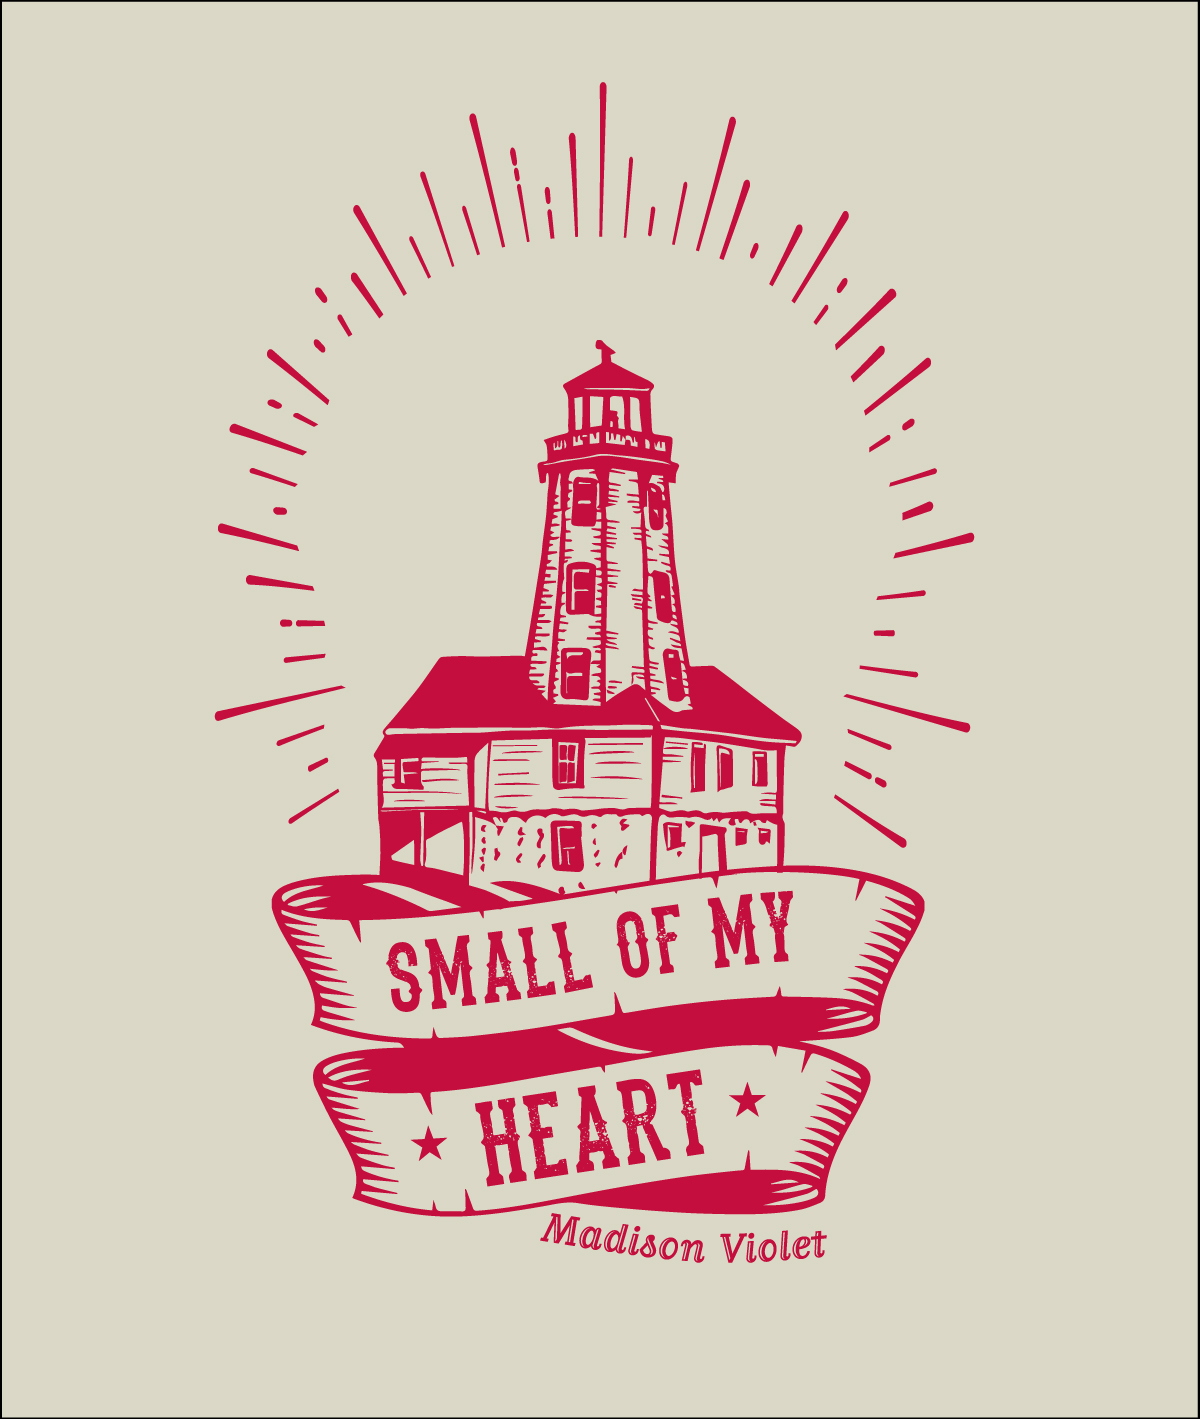 Madison Violet Kincardine Light House T shirt Design